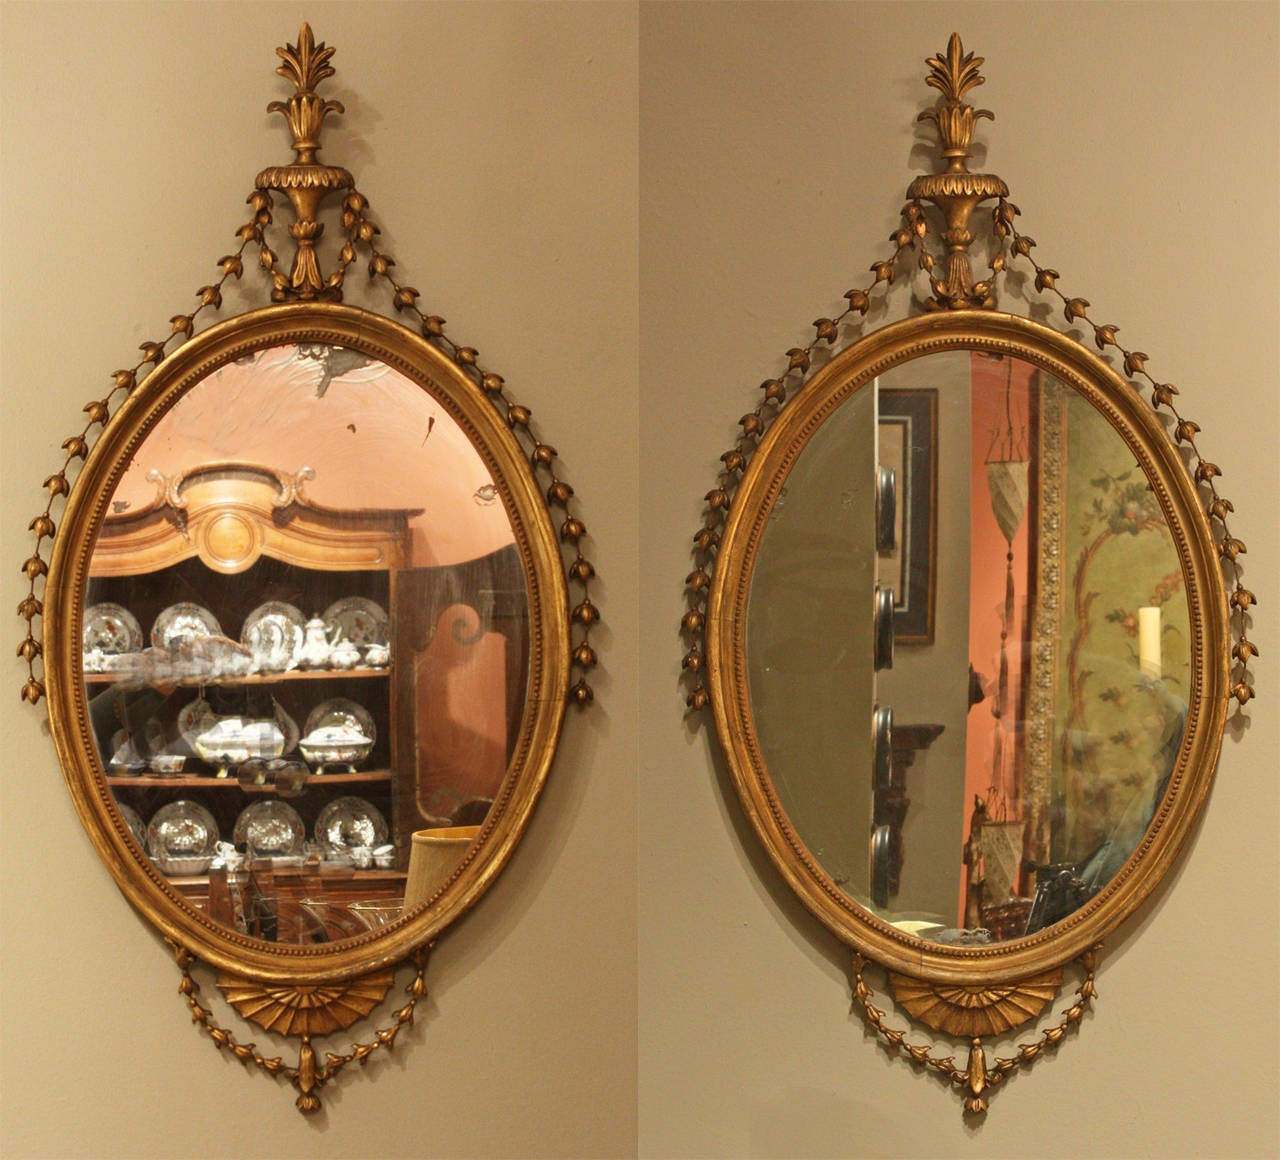 These mirrors retain their original mirror plate and are in excellent condition with minor restoration to the husk garlands.